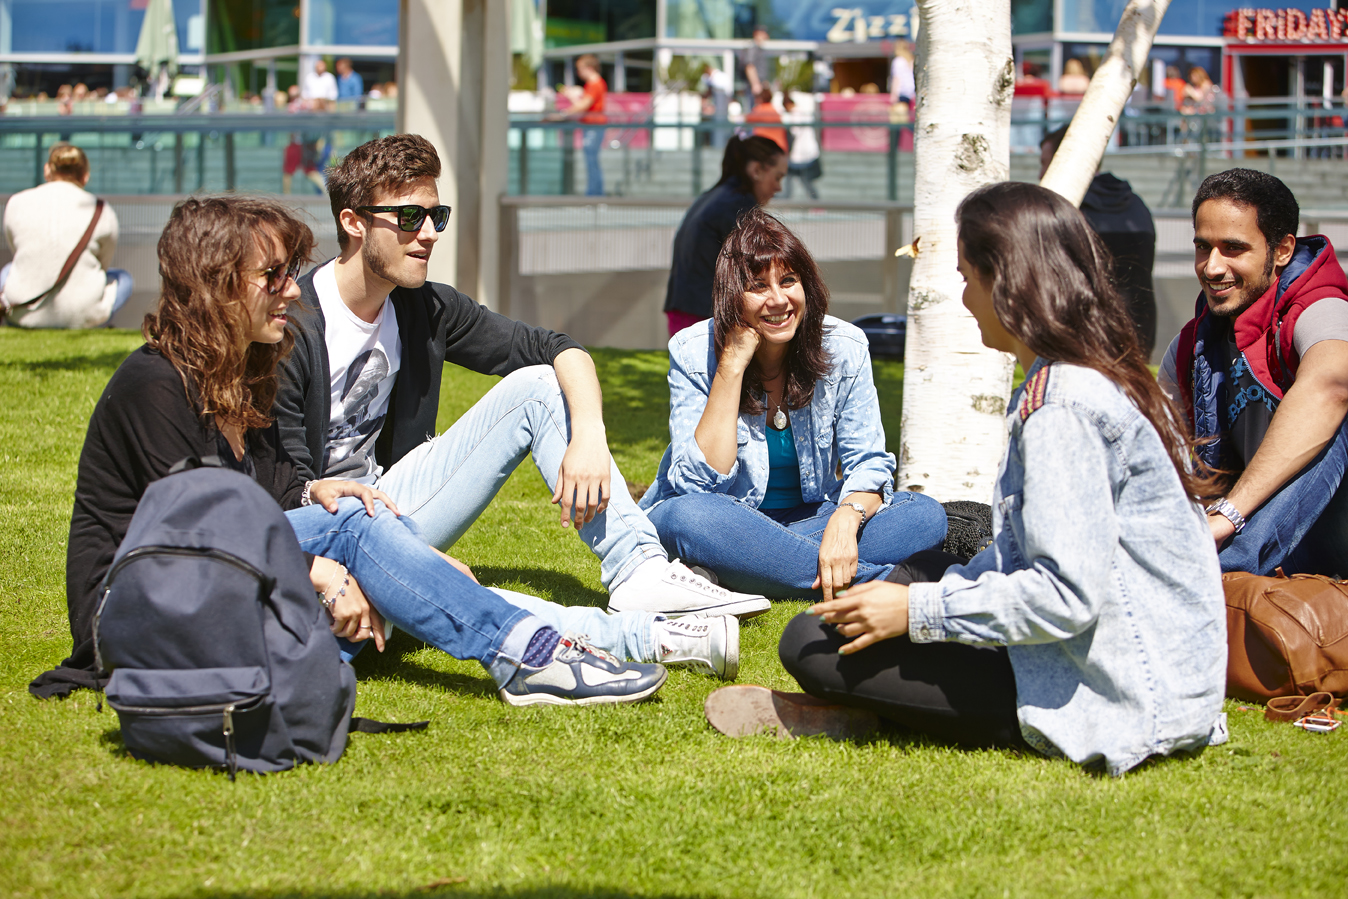 study abroad at young age